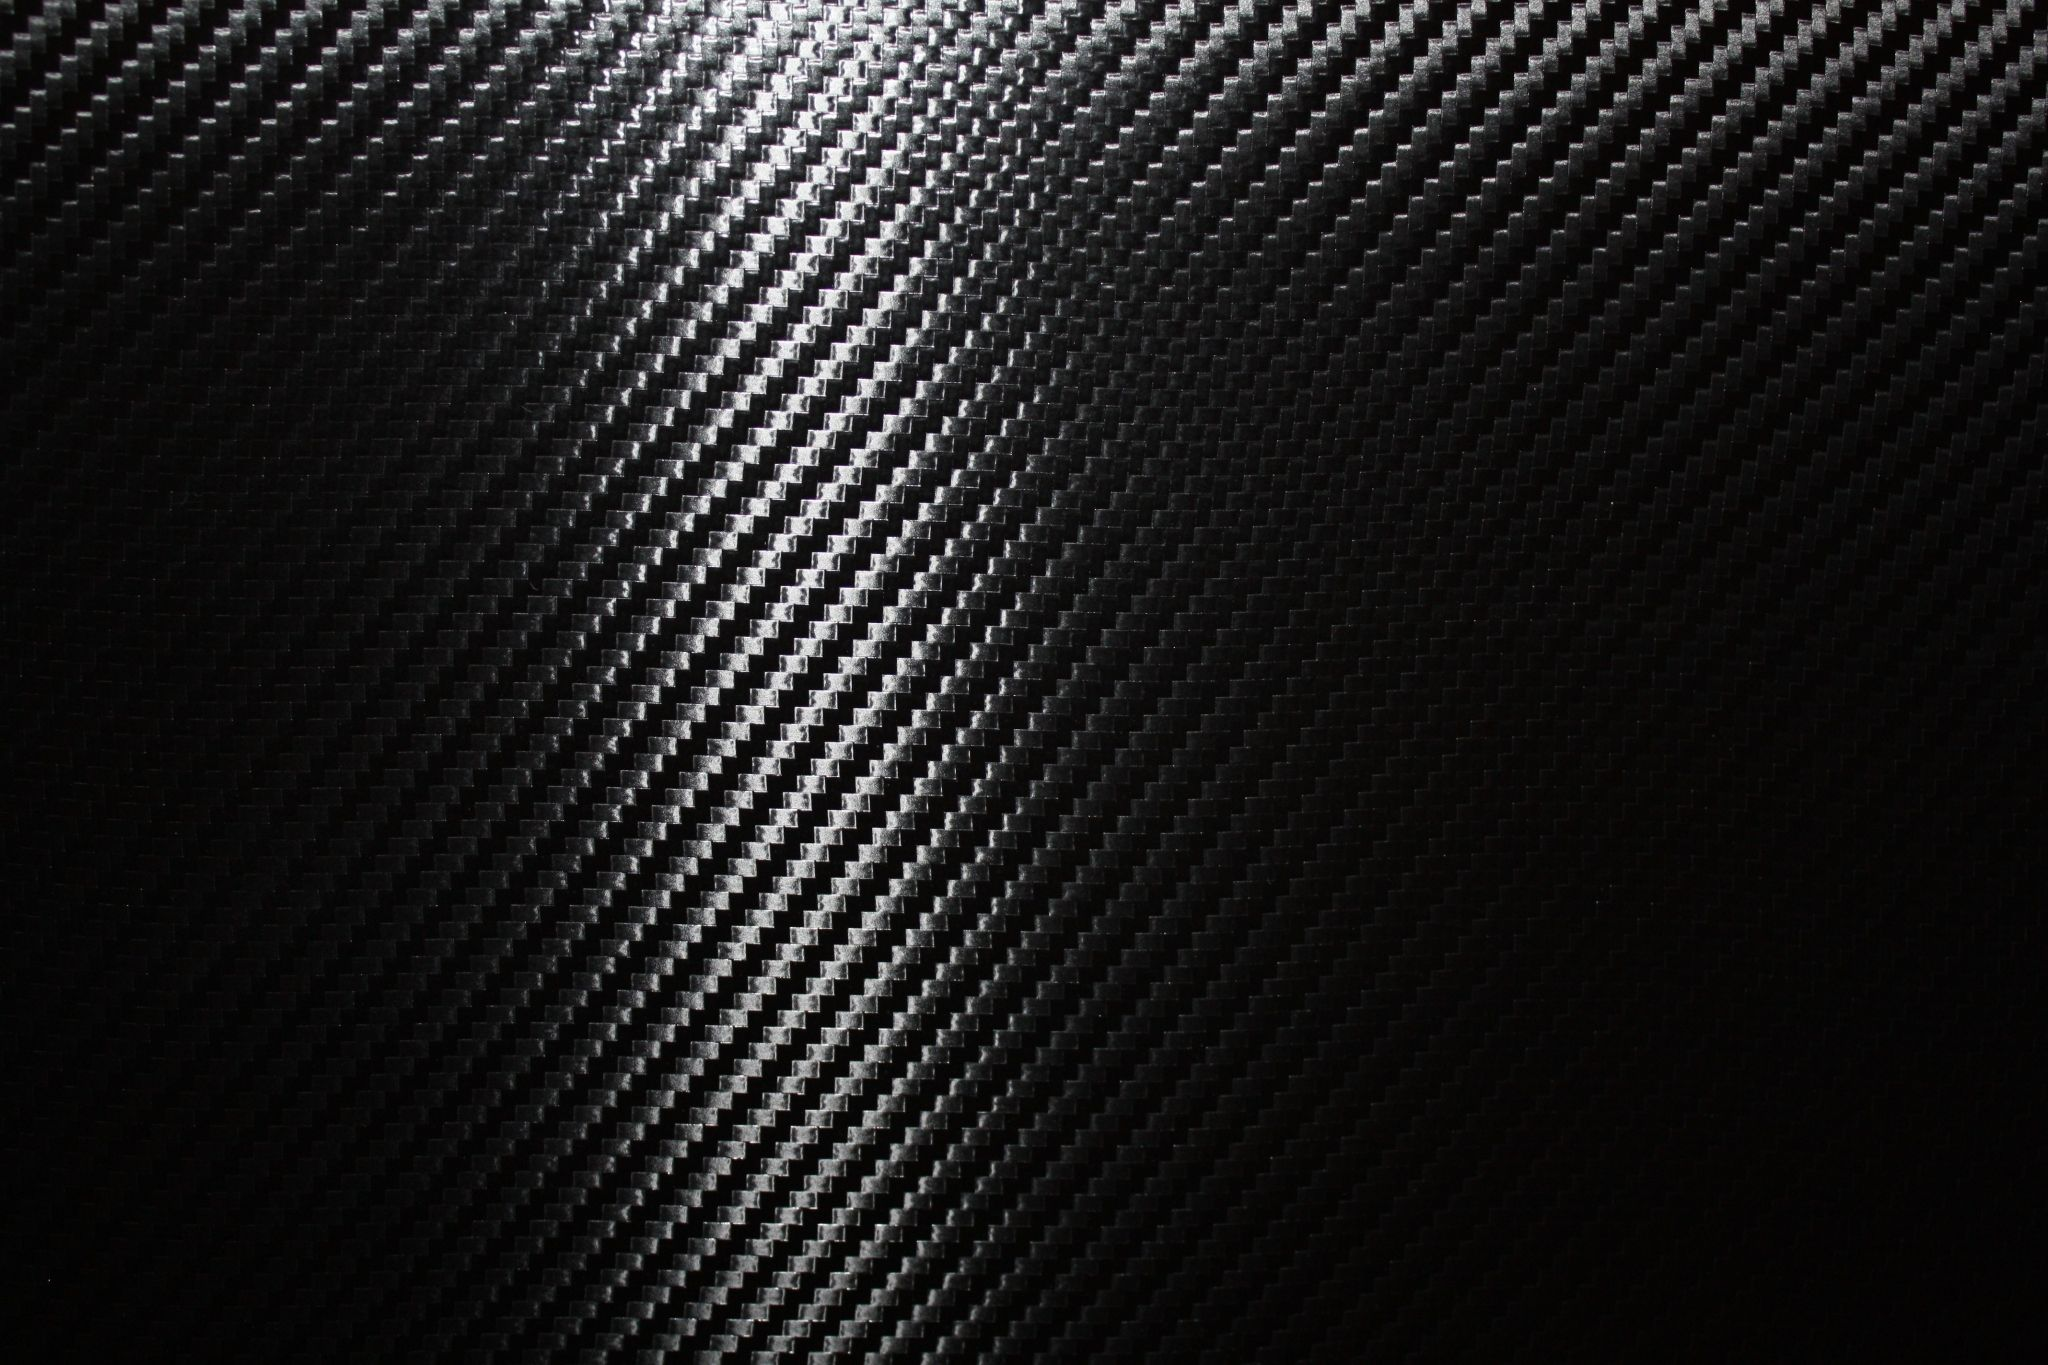 2048x1365 HD Carbon Fiber Wallpaper - Anband HD Pictures